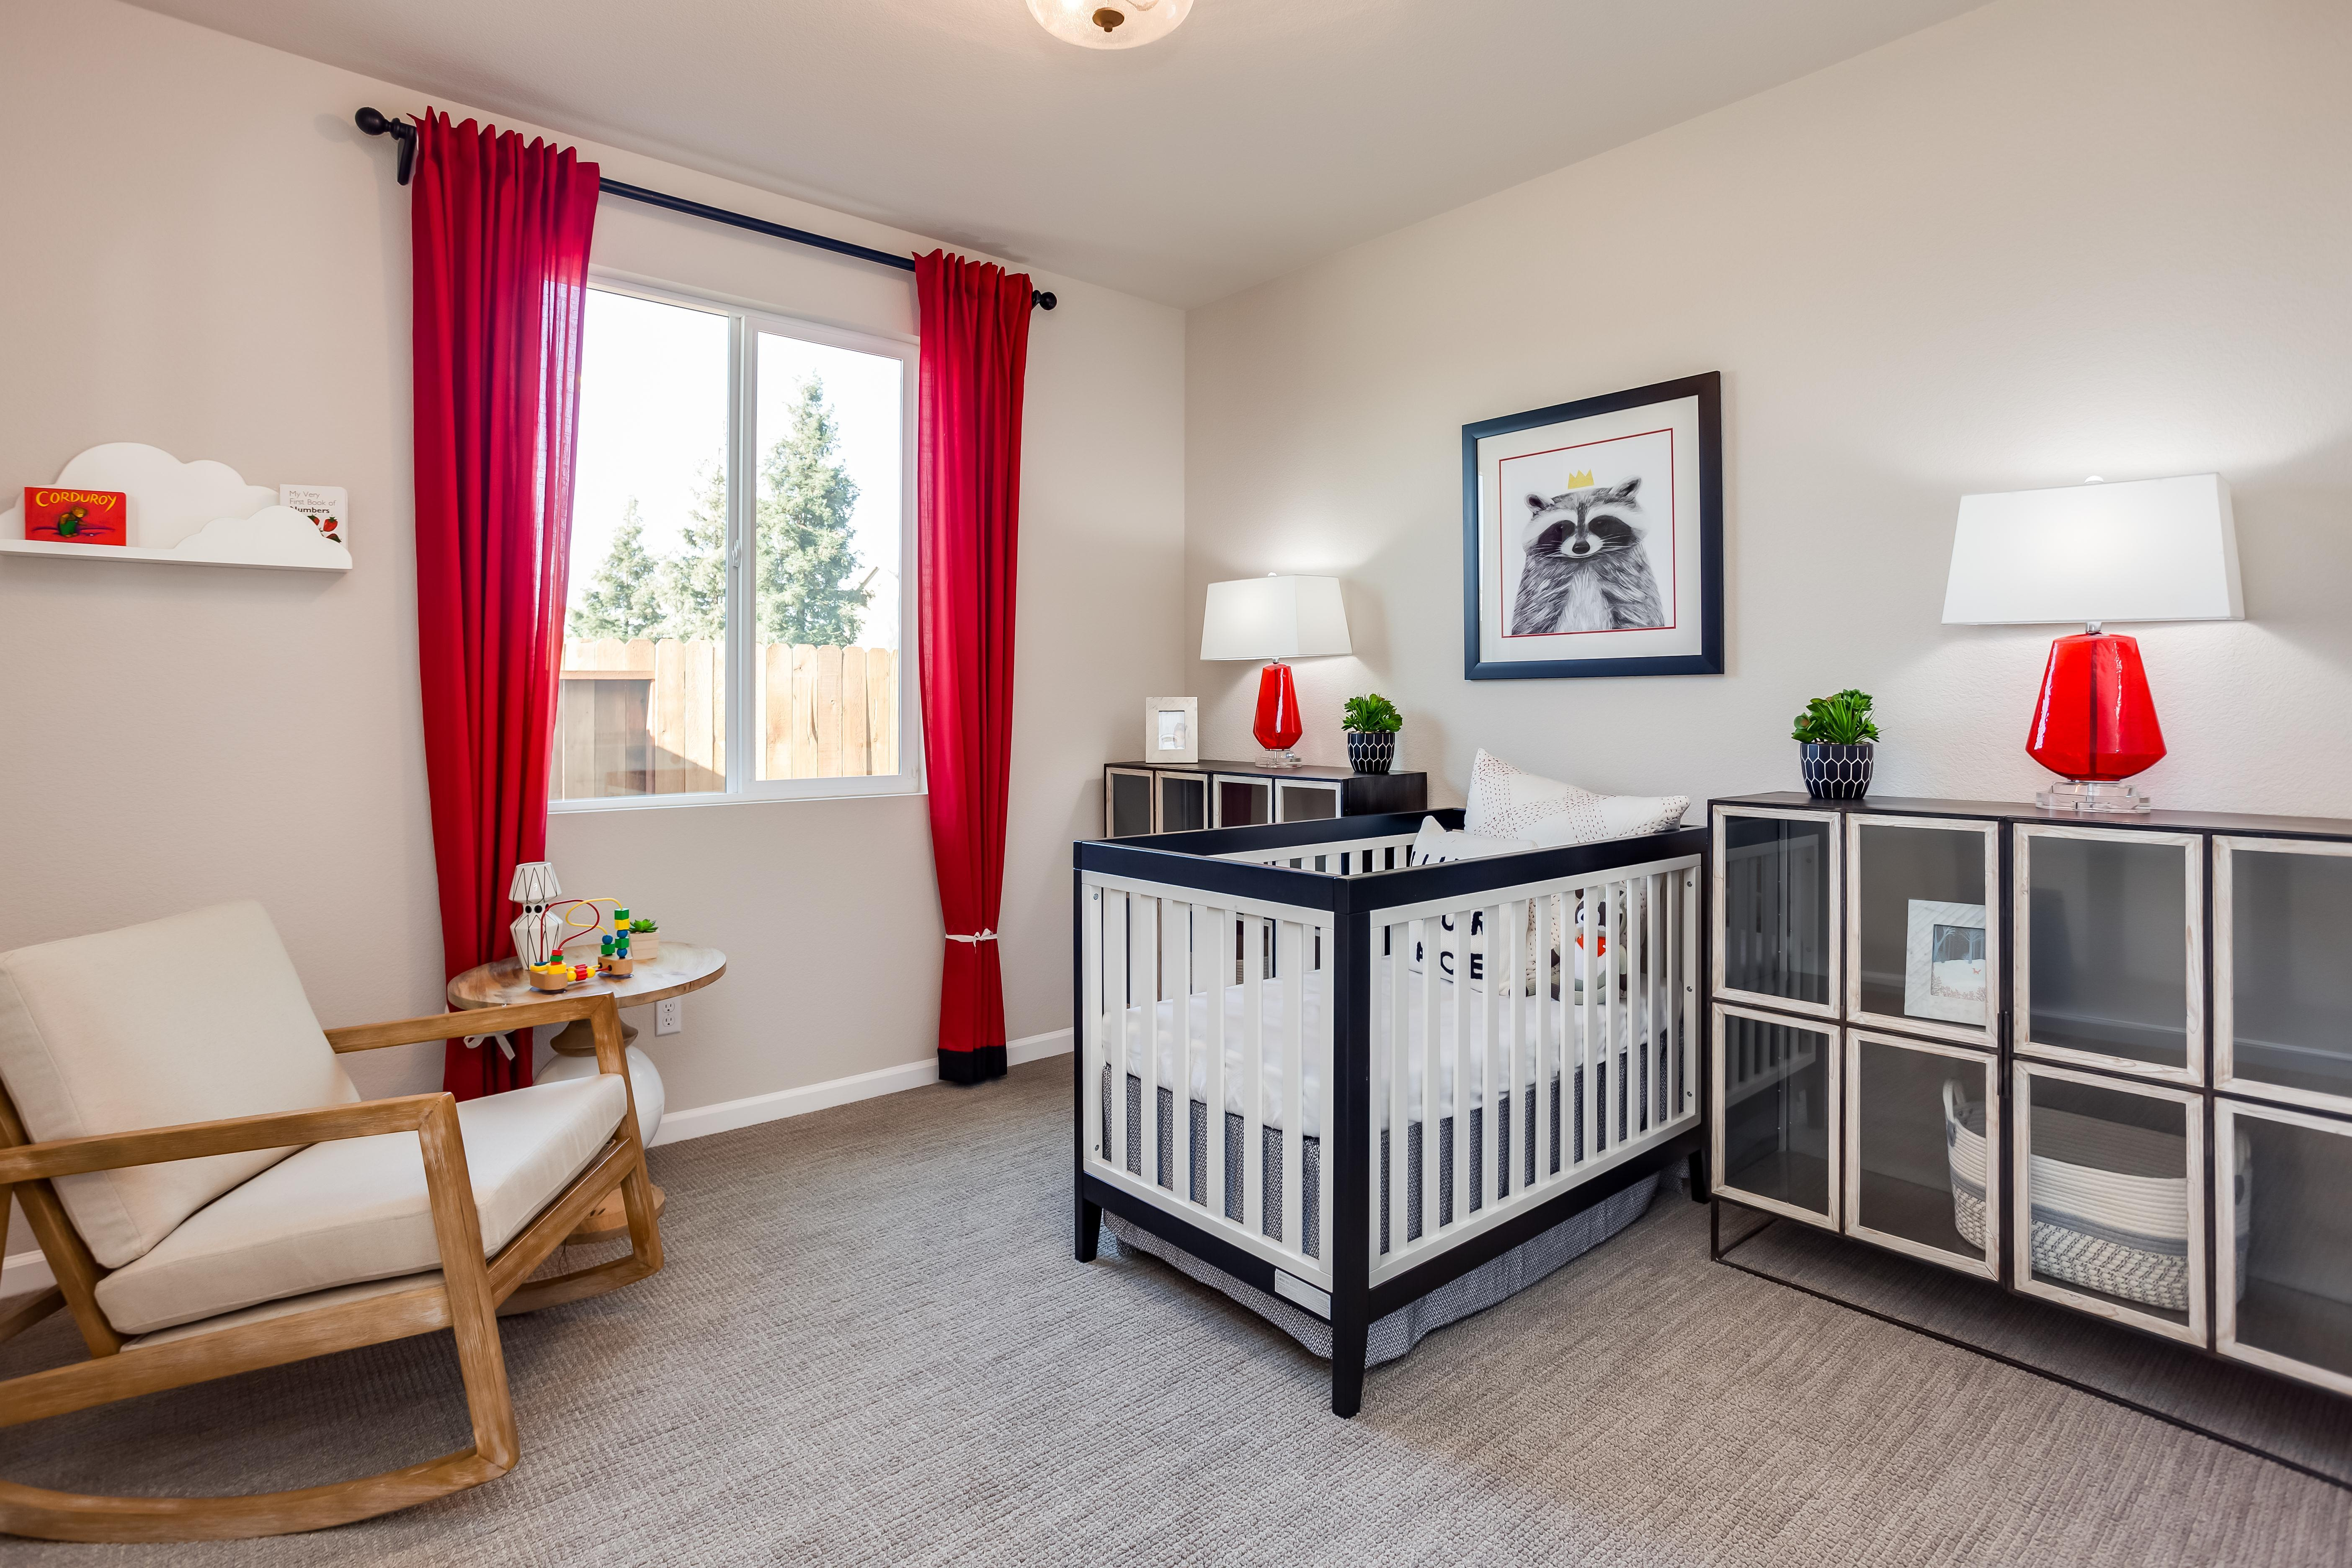 Bedroom featured in the Residence Two By Bright Homes in Merced, CA